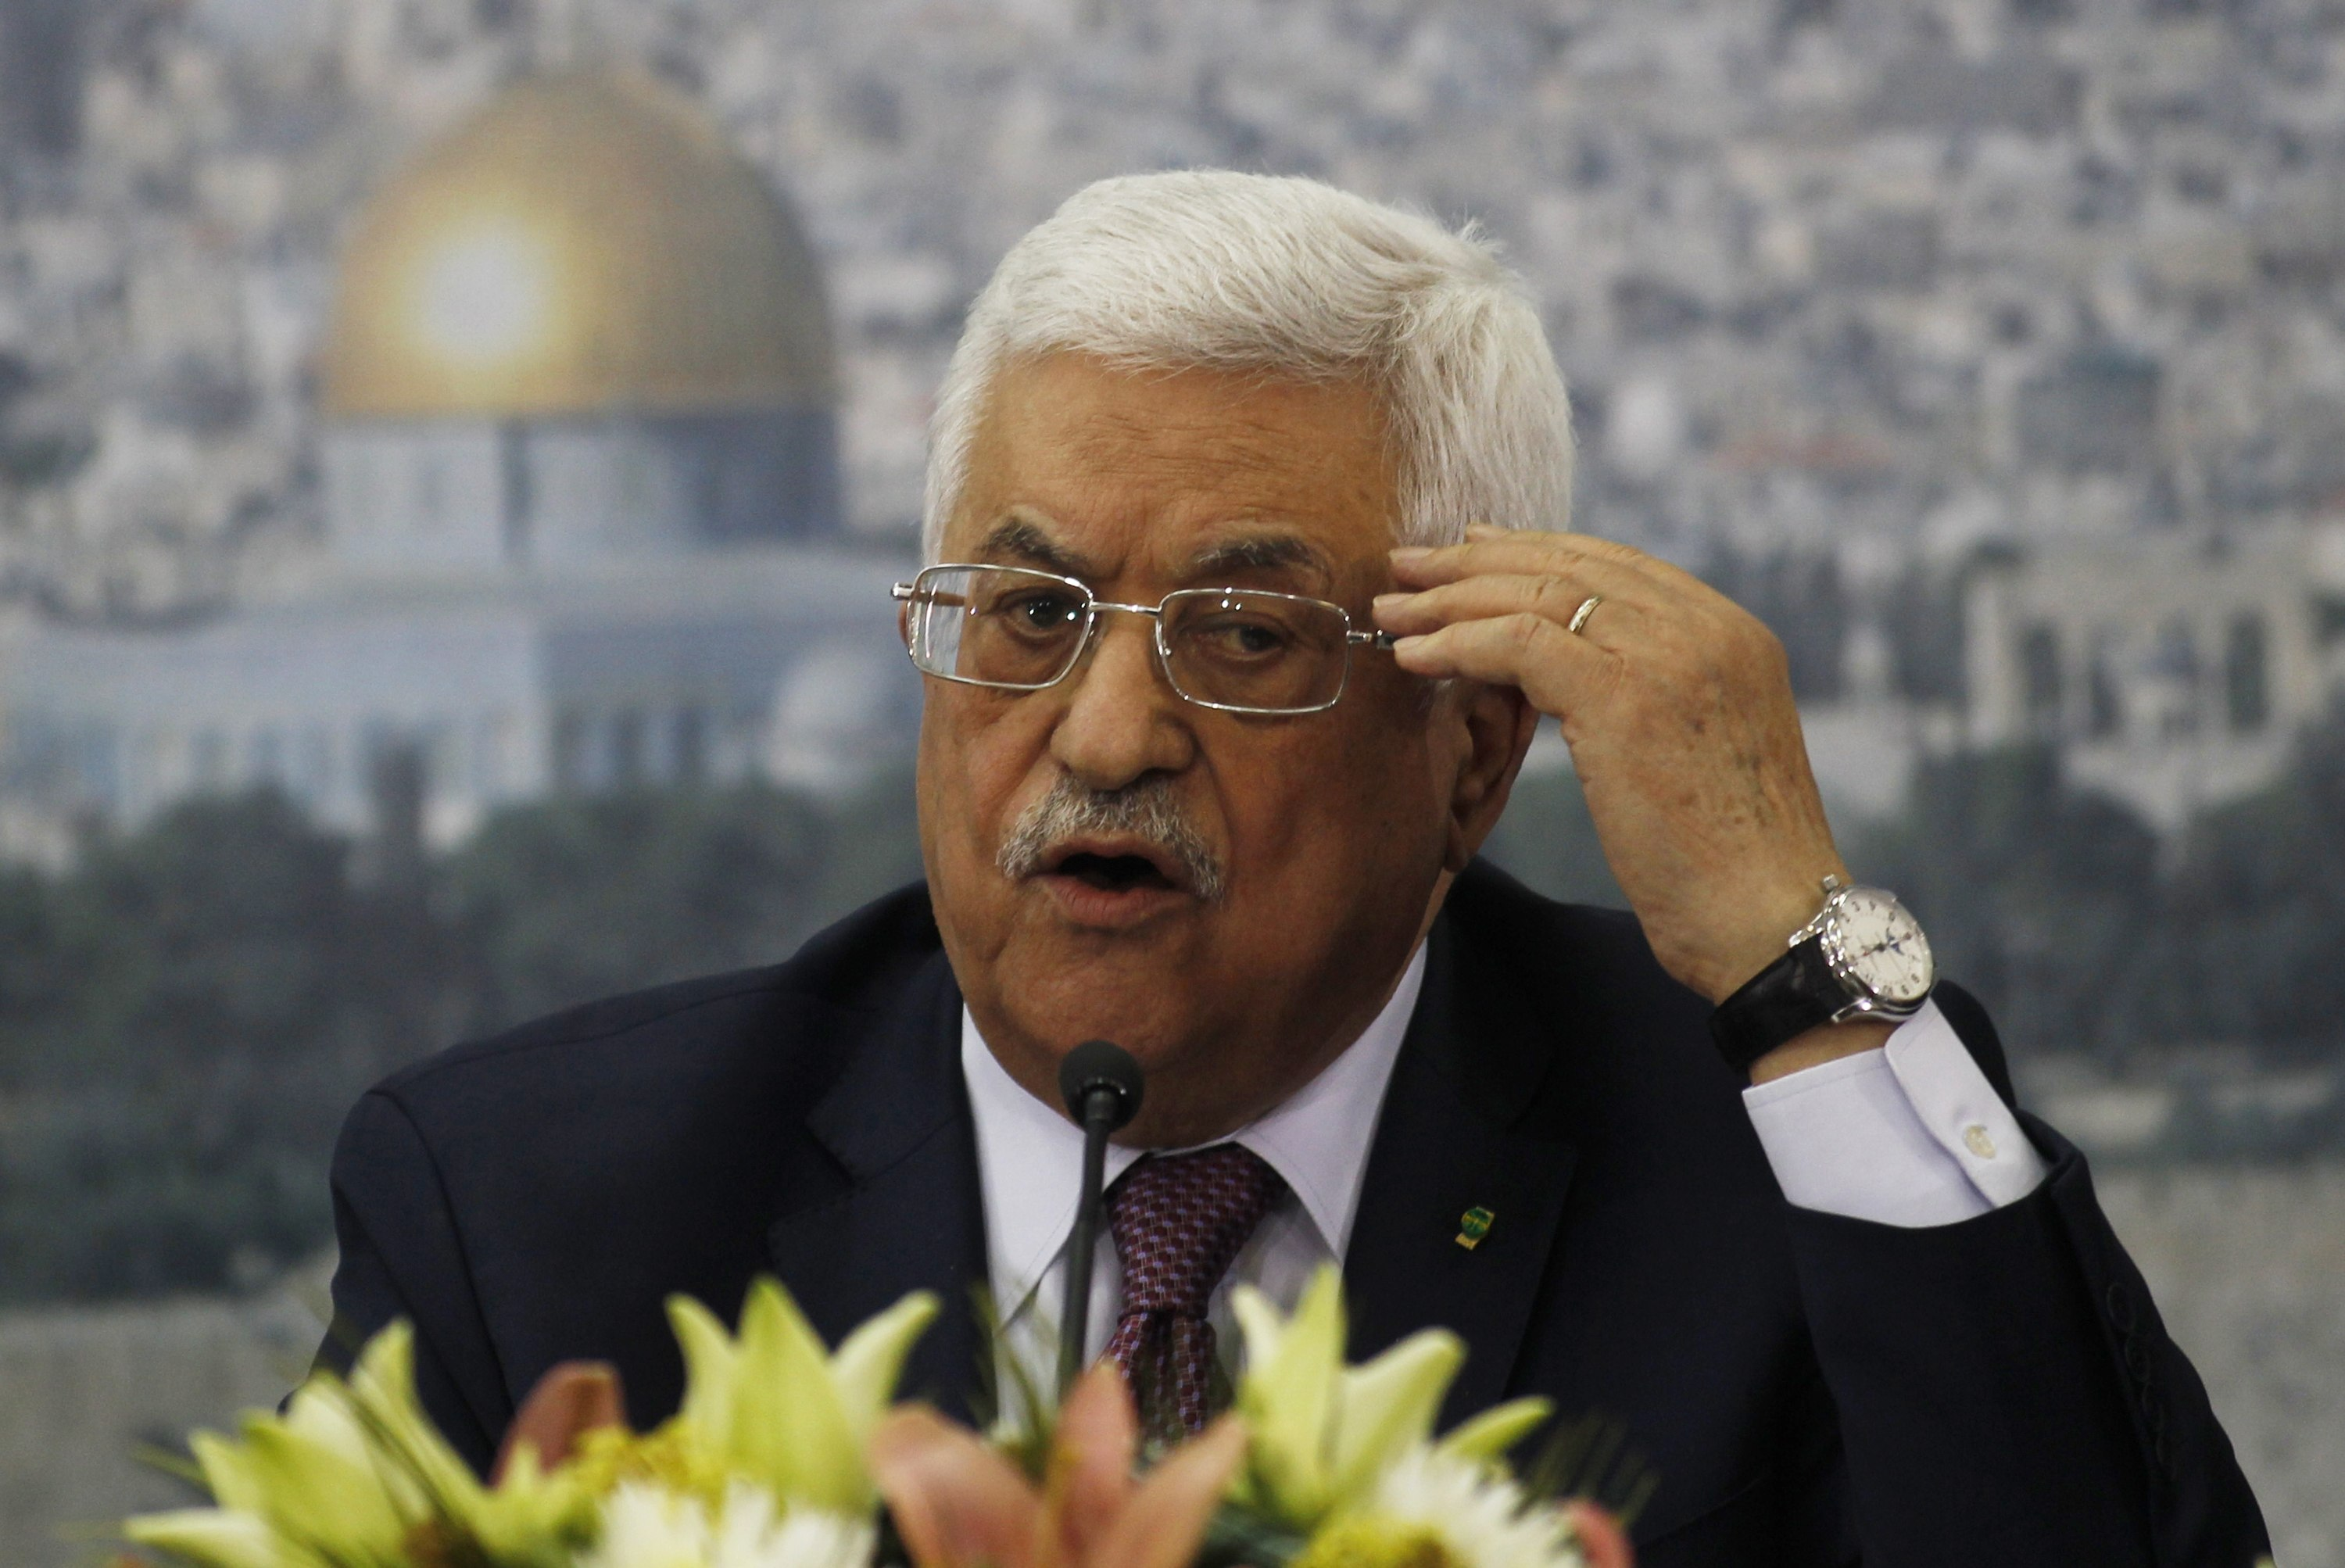 Palestinian leader lashes out at rival, political tensions flare